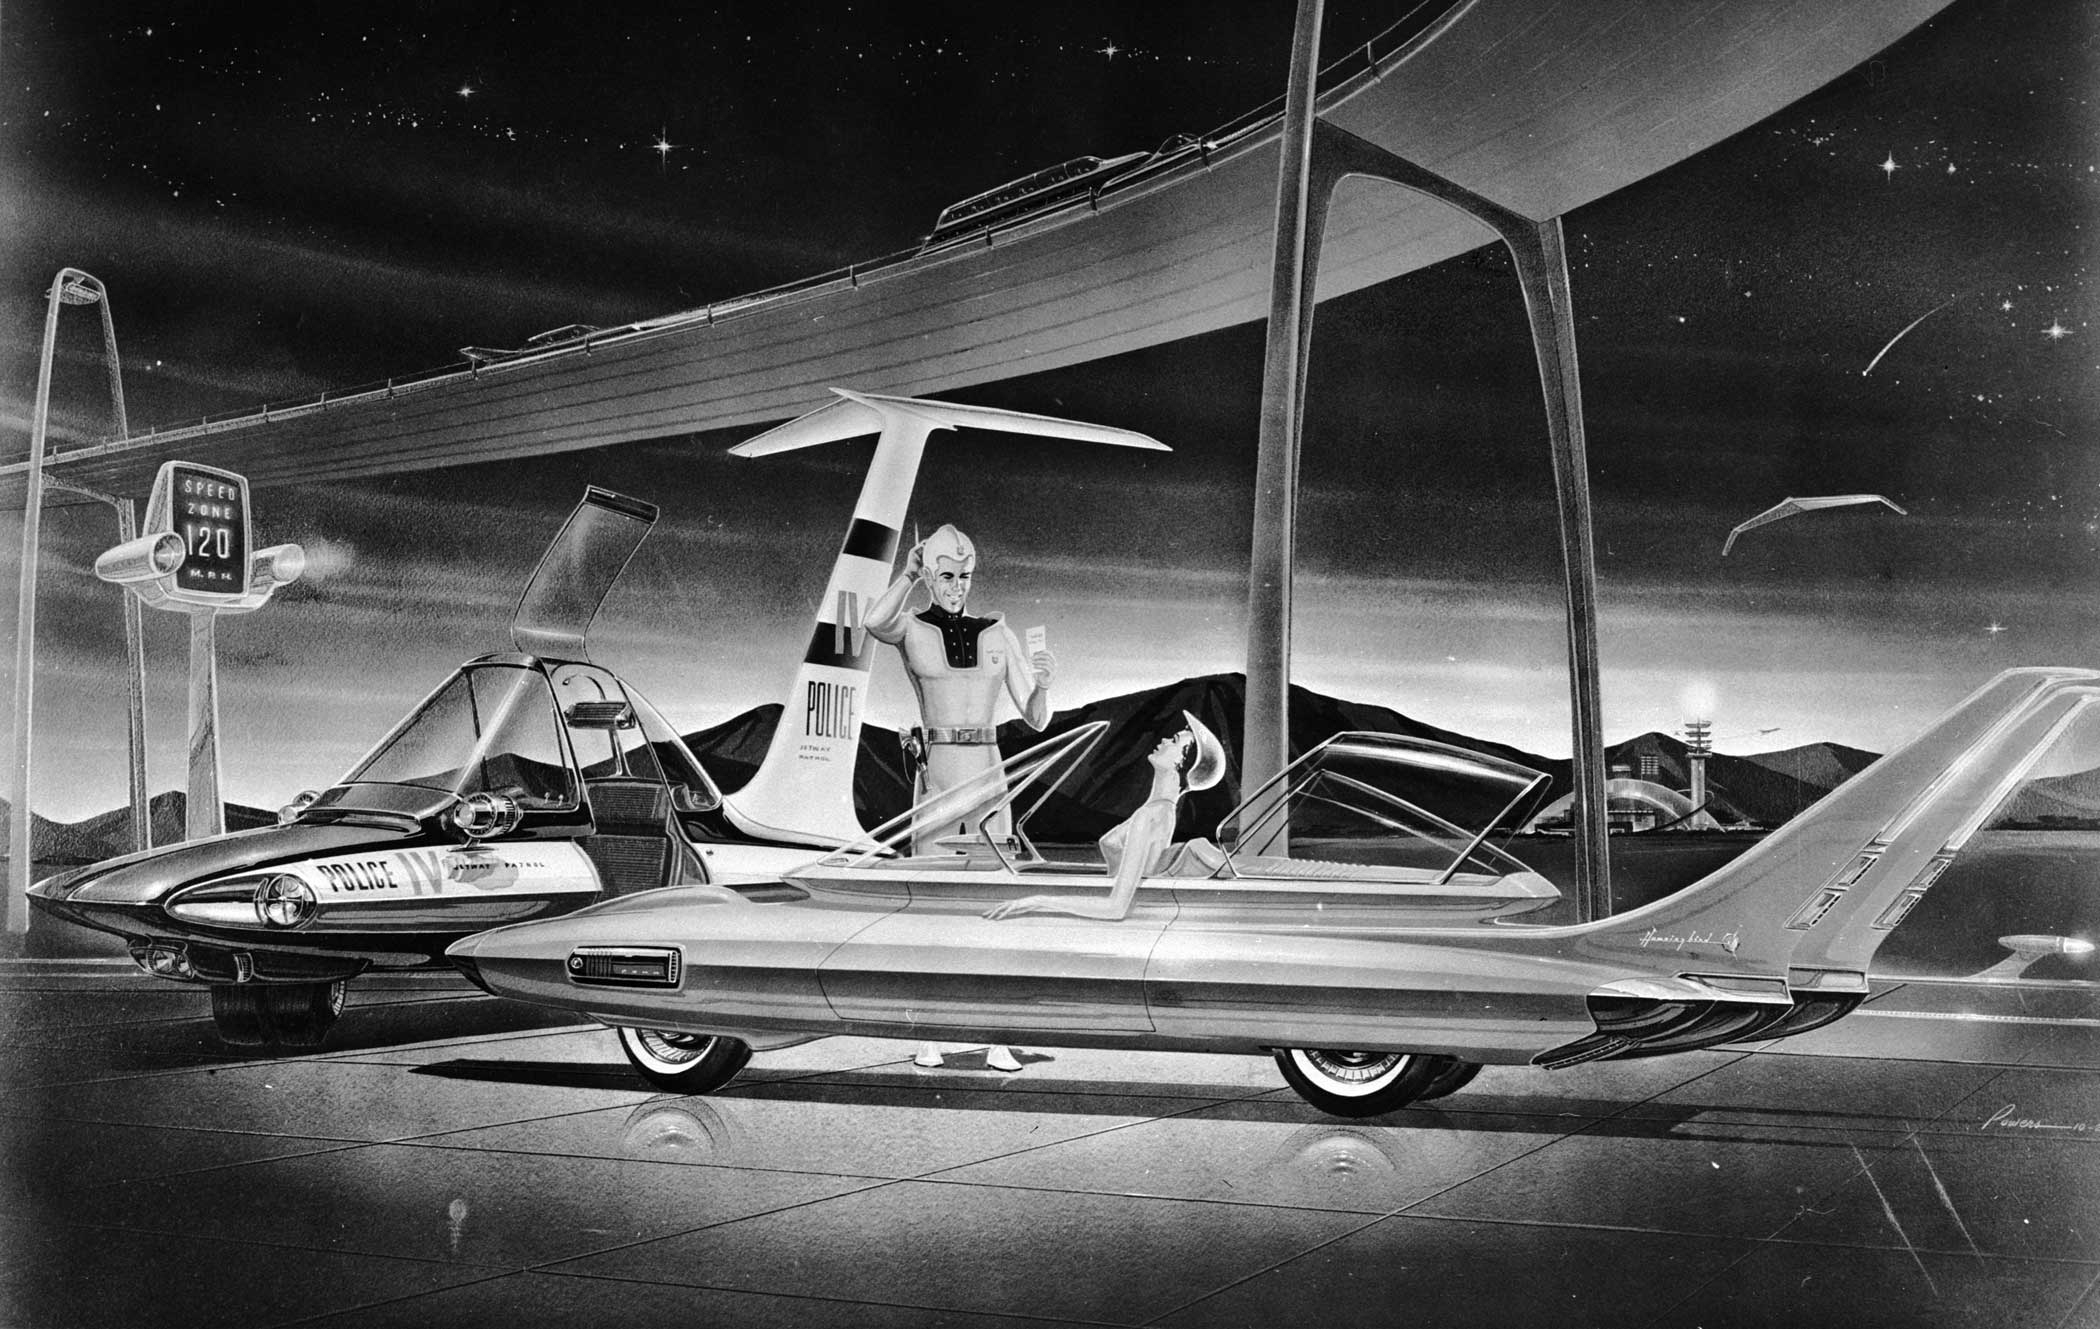 An artist's impression of the future circa 1958 of the automobile: a vehicle that easily draws the attention of the police for exceeding the 120mph speed limit.